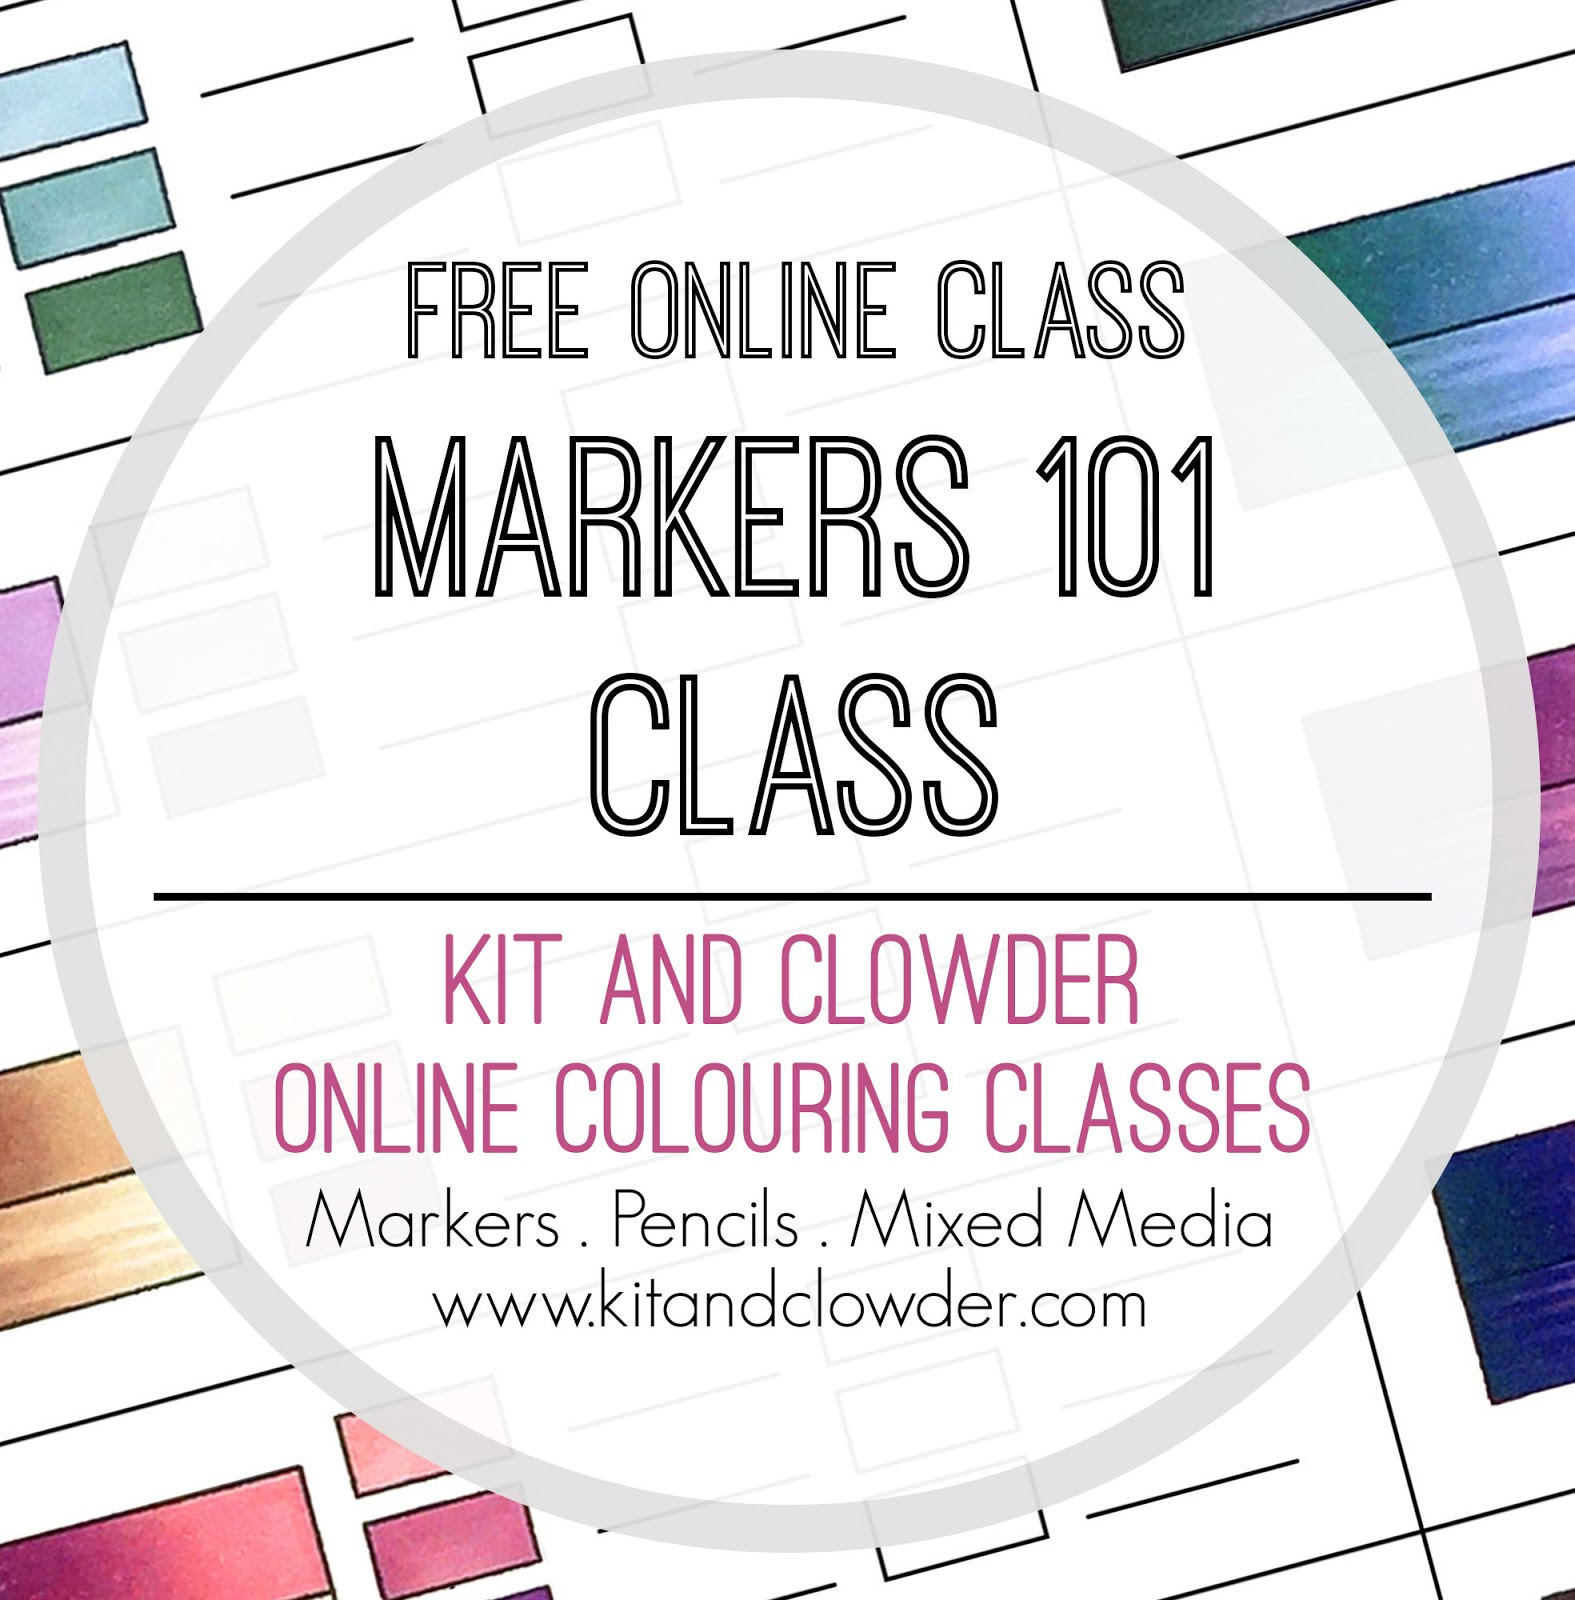 Join our FREE Markers 101 Class